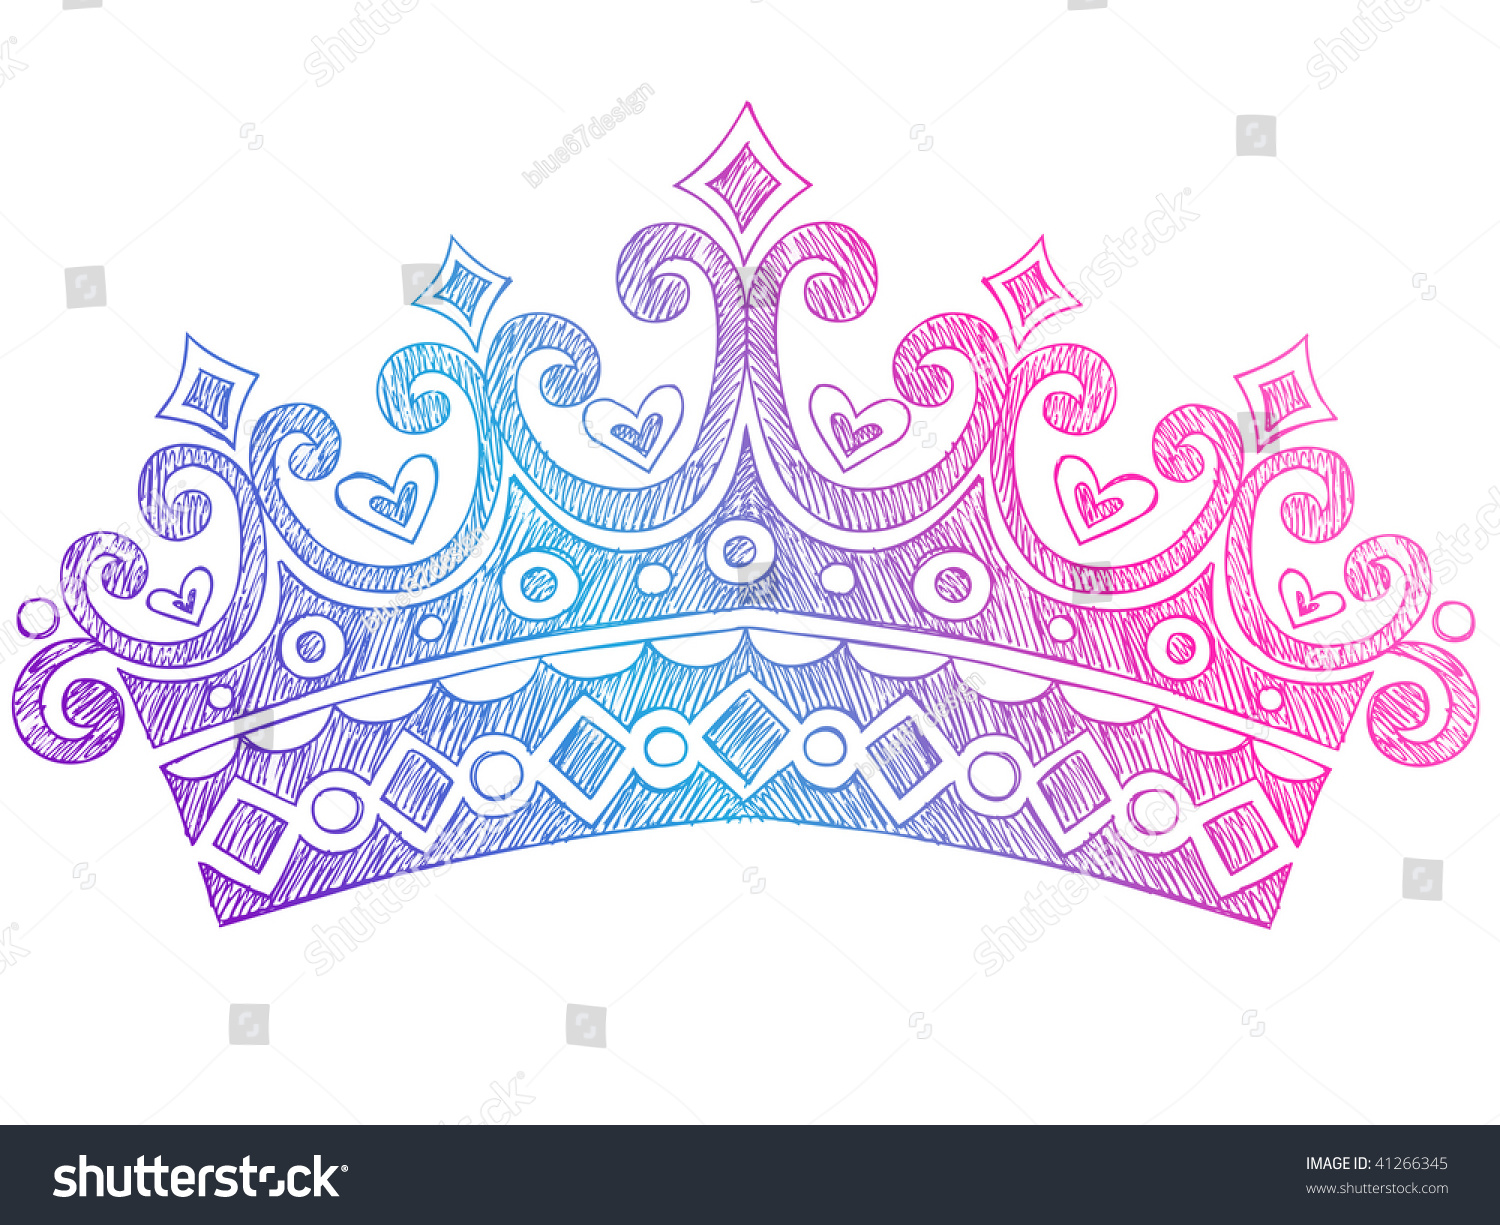 Notebook And Pen Sketch Stock Vector Art More Images Of: Handdrawn Sketchy Royalty Princess Queen Crown Stock